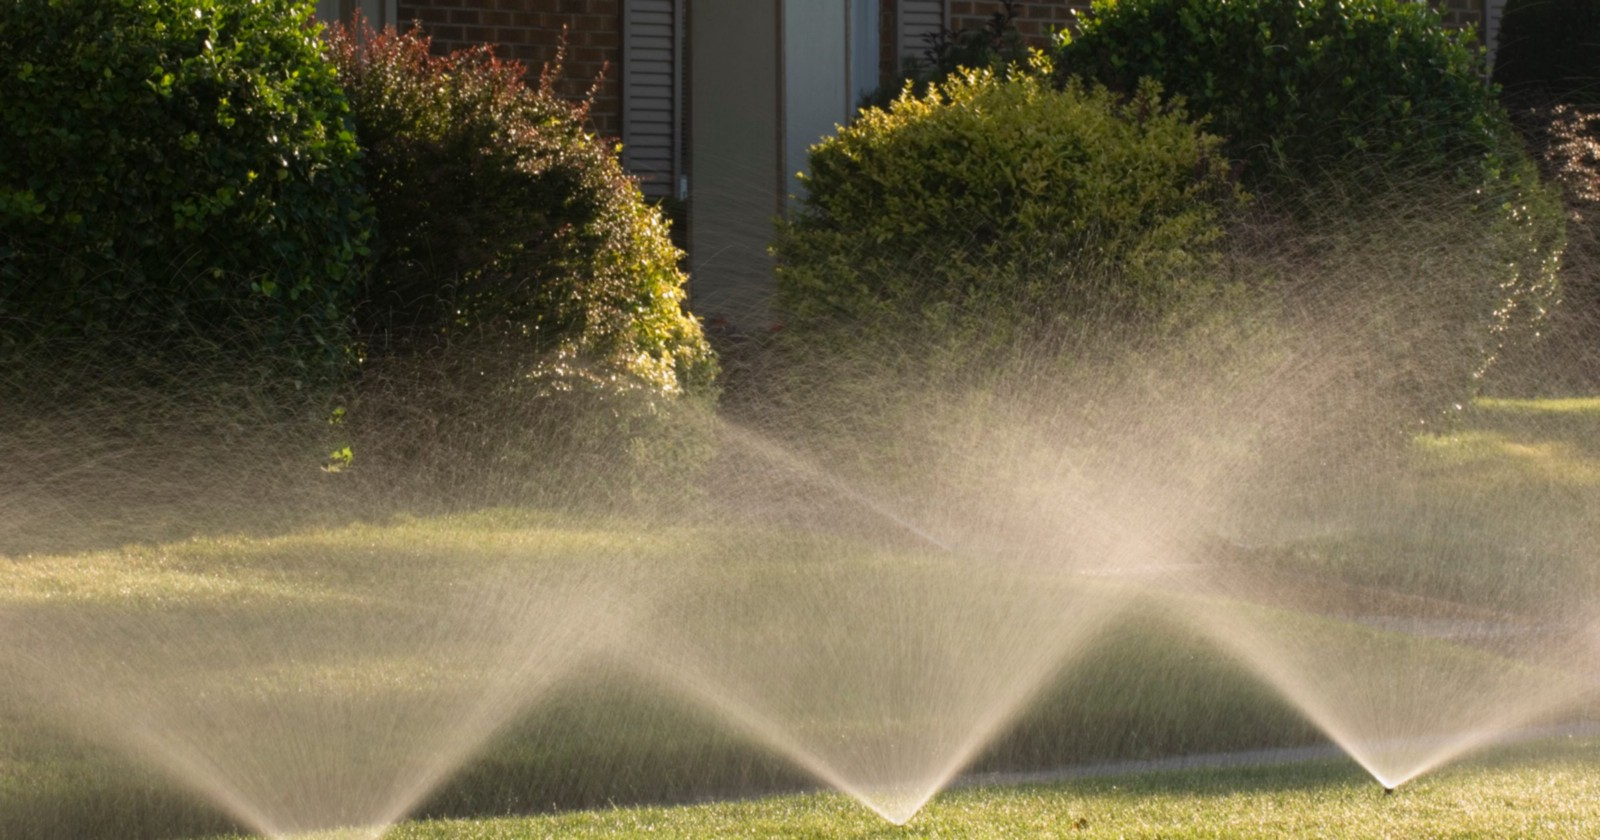 Reasons Why Homeowners With Irrigation Systems on Their Gardens Seem ...